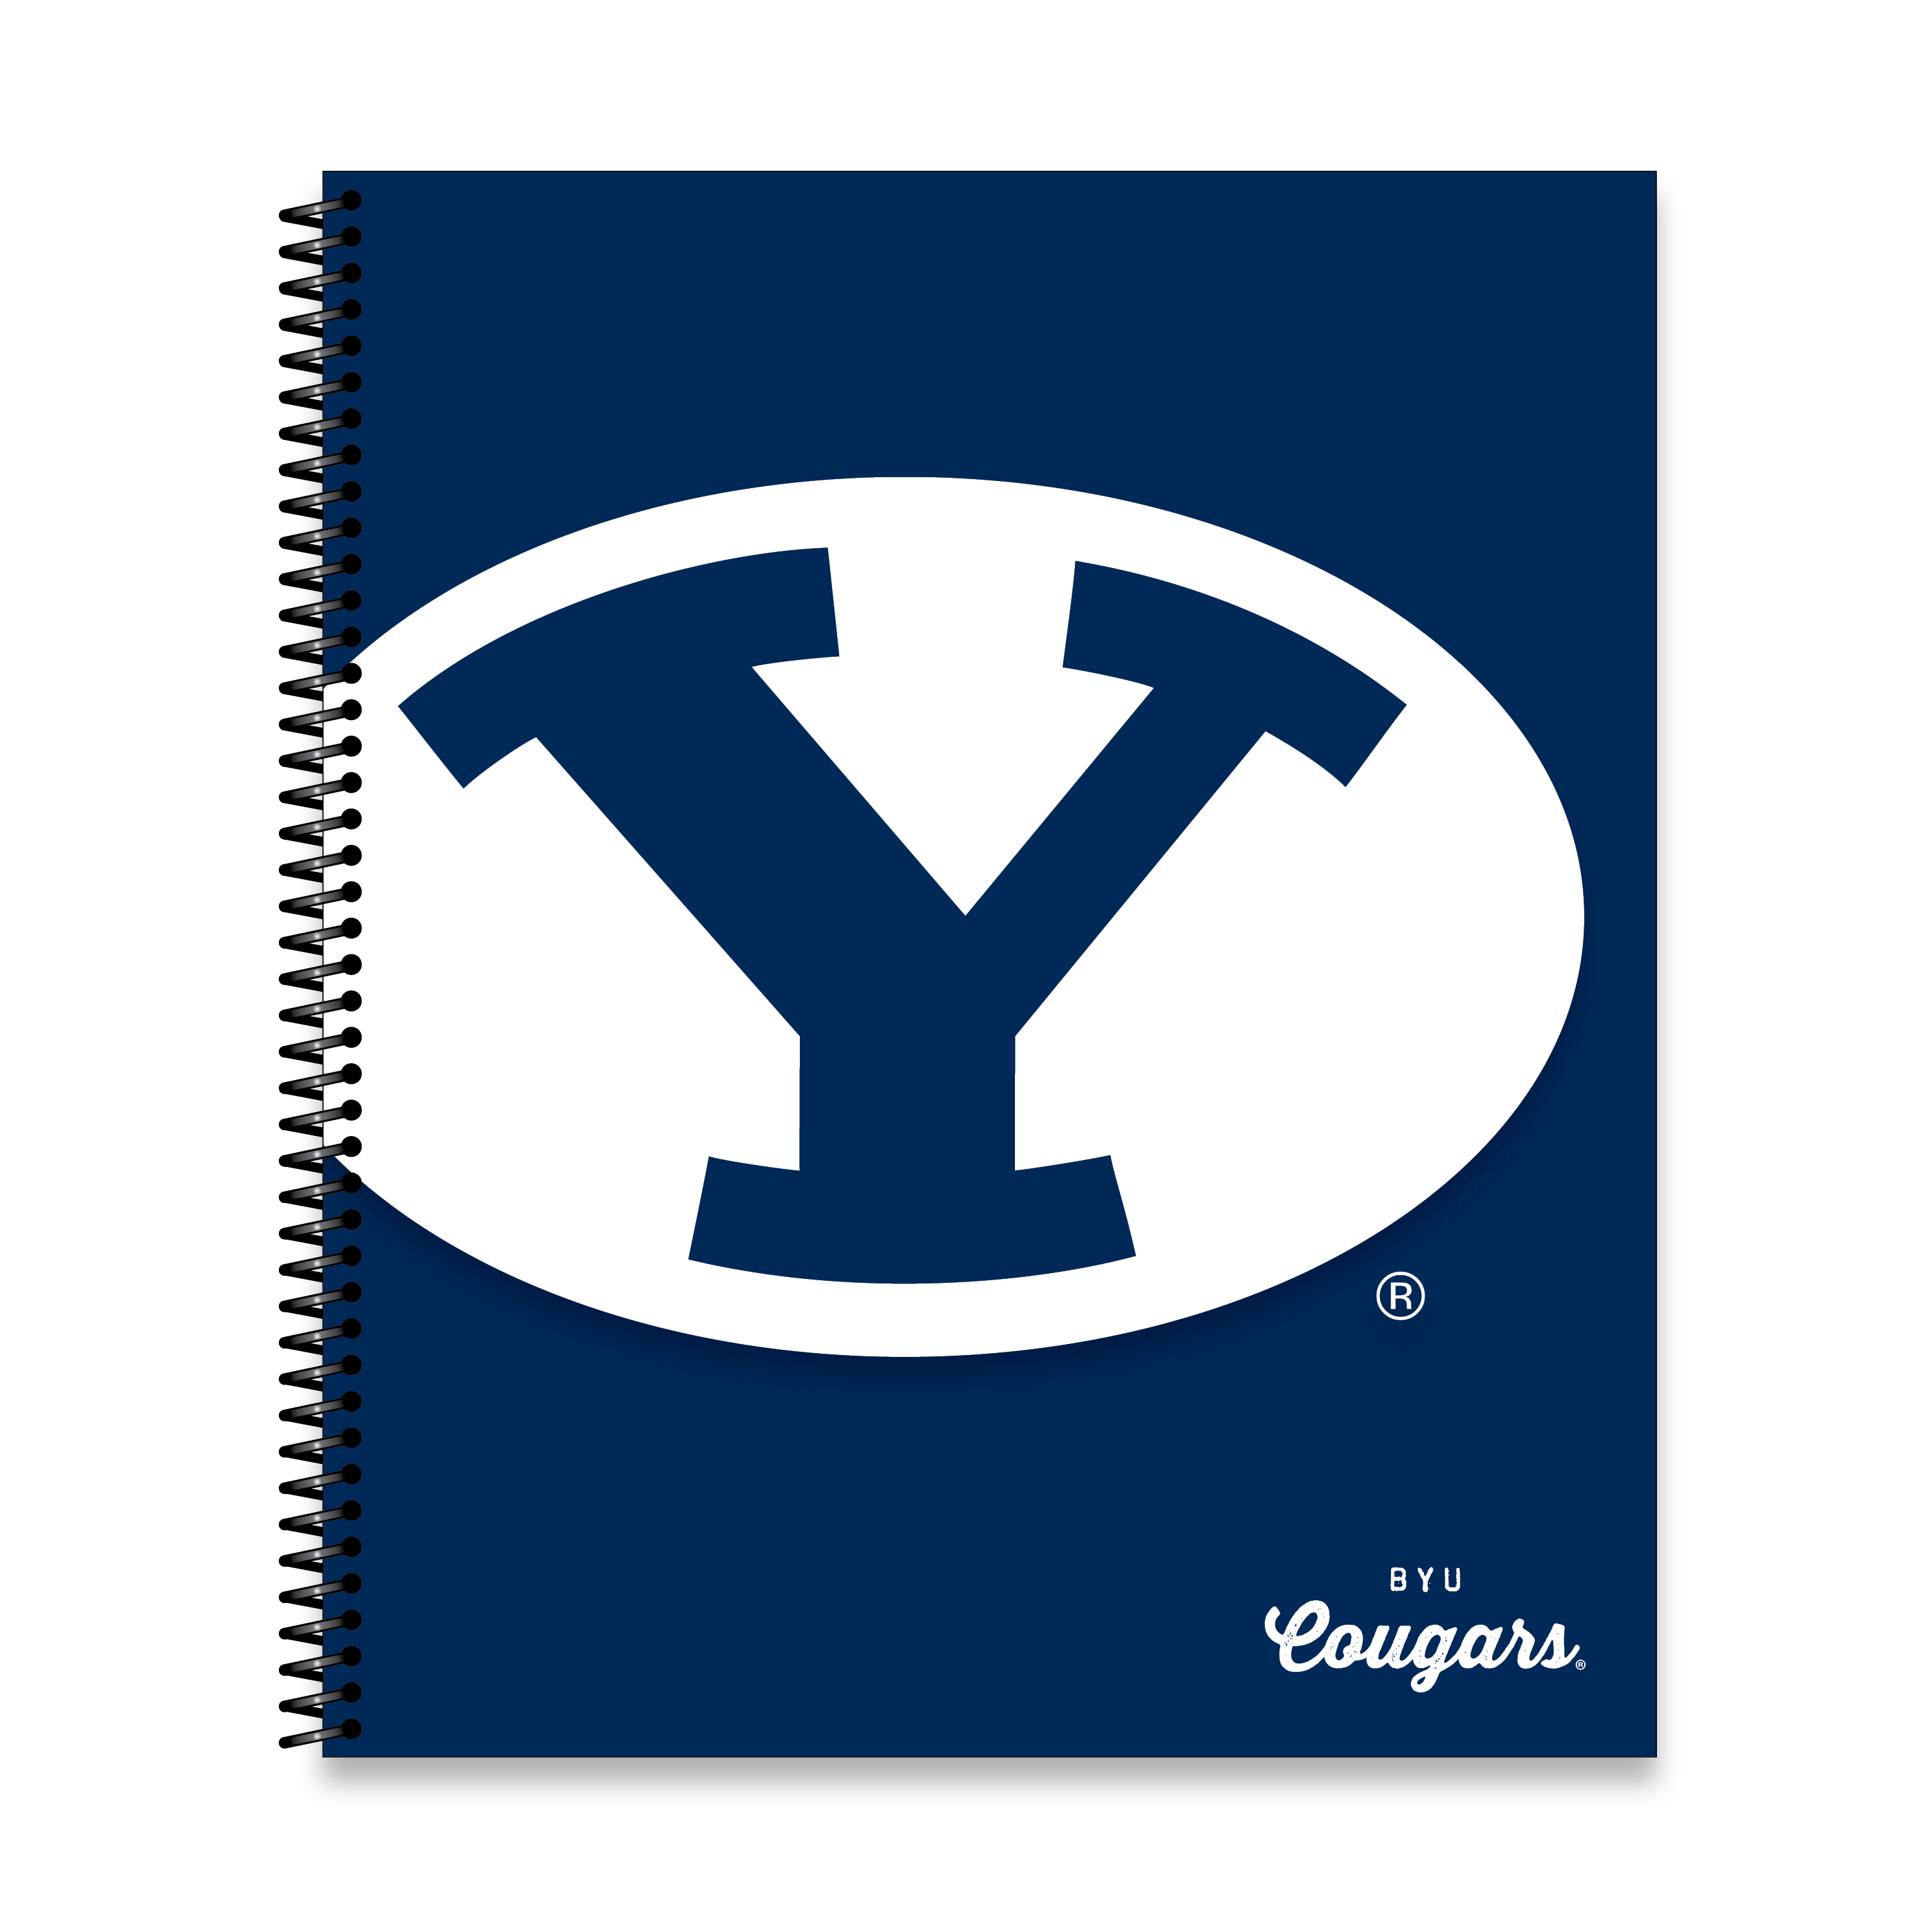 Brigham Young 5sub Ntbk Cl3 Byu Cougars